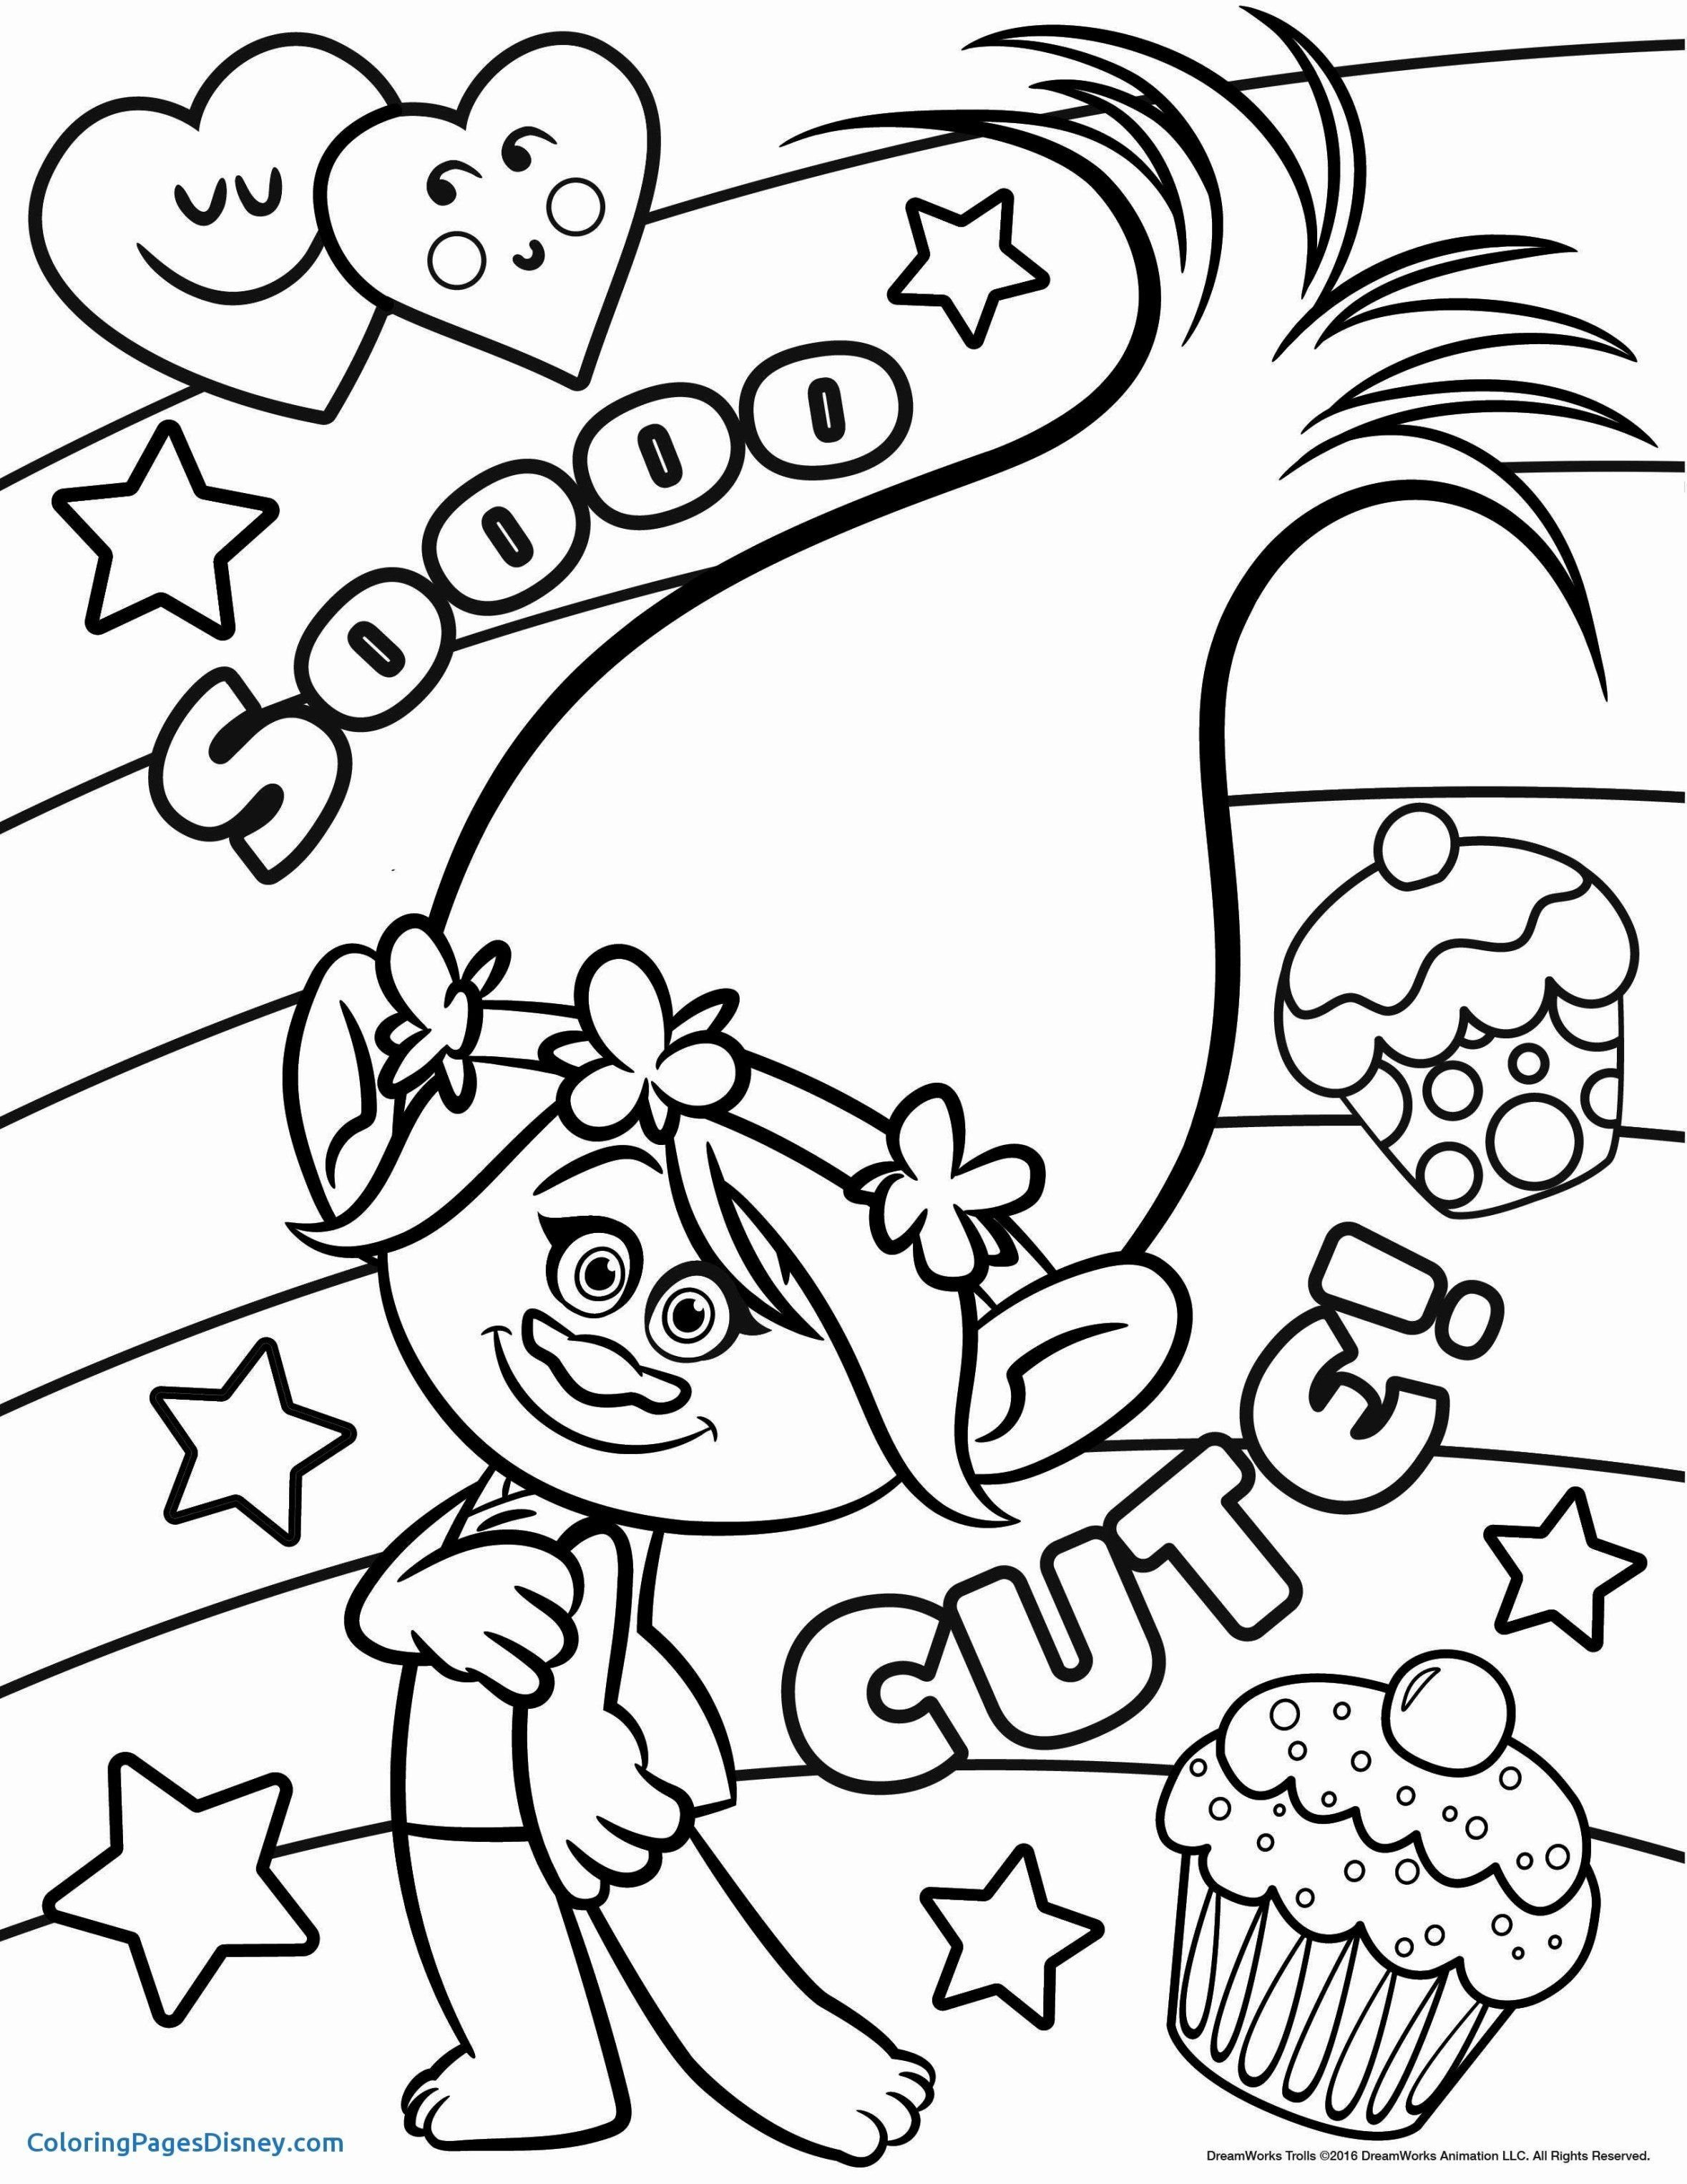 Disney Coloring Pictures For Kids - Coloring Home | 3052x2358